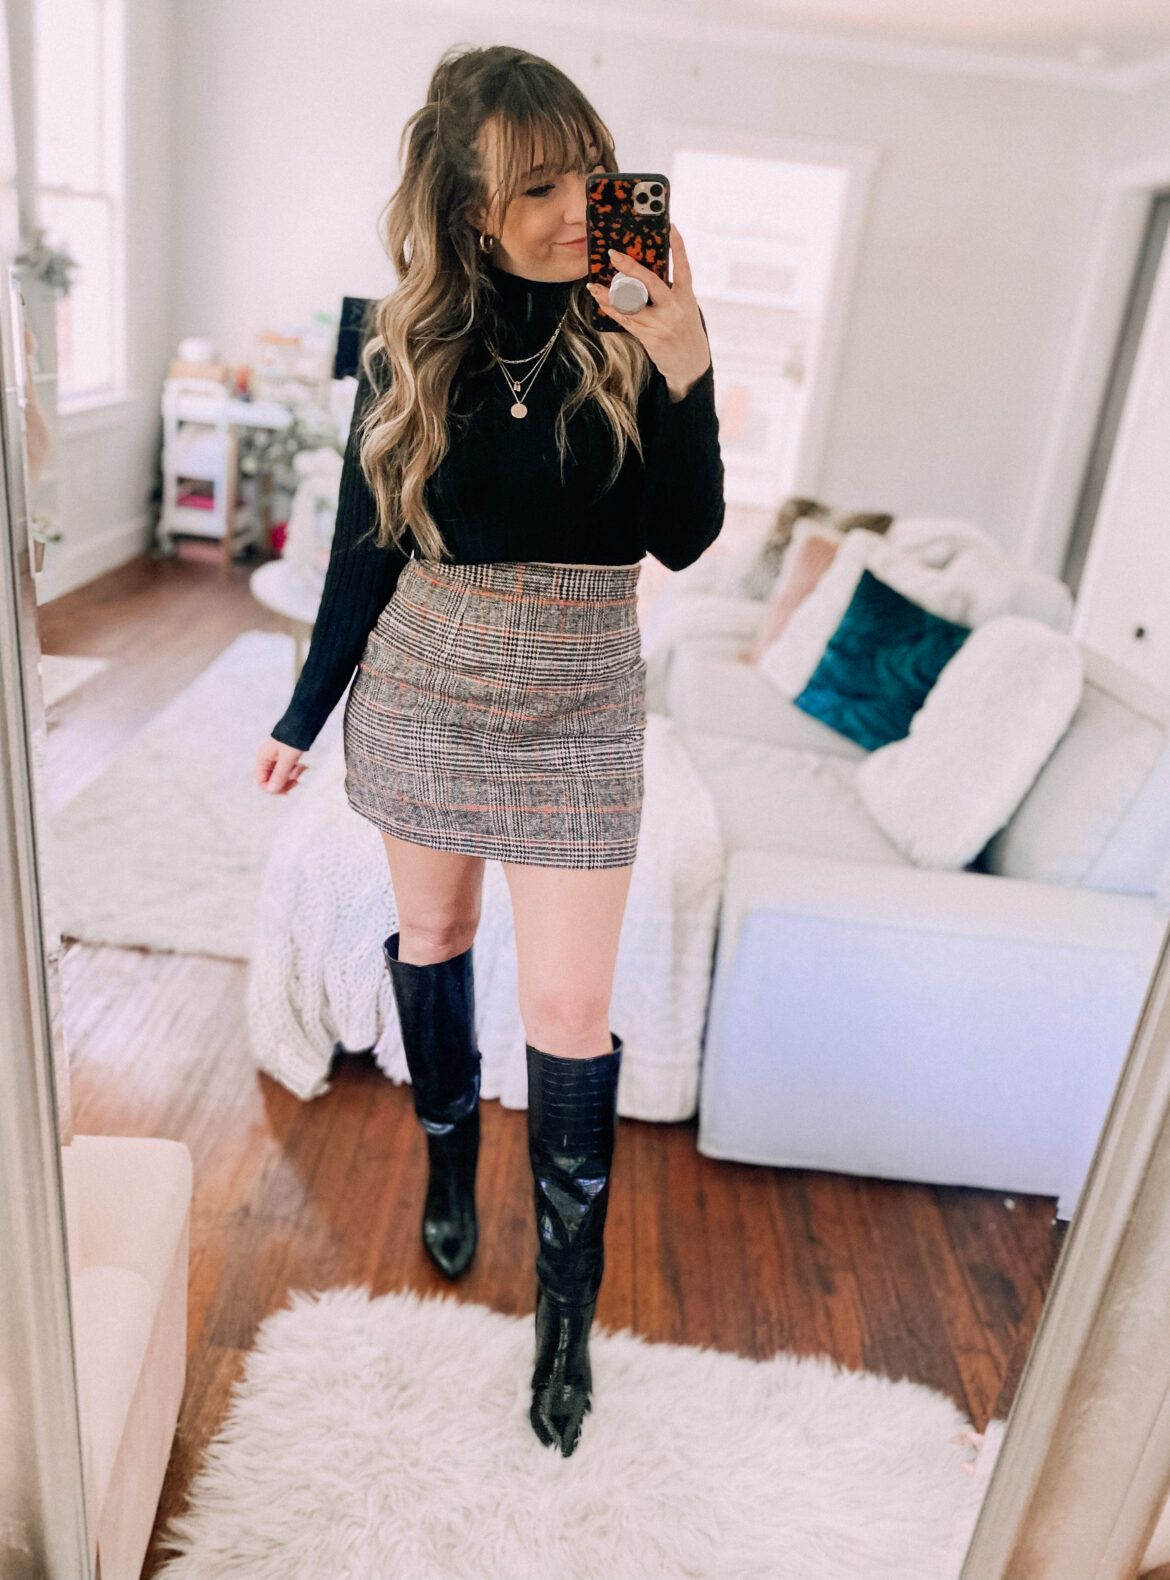 Amazon plaid skirt outfit idea